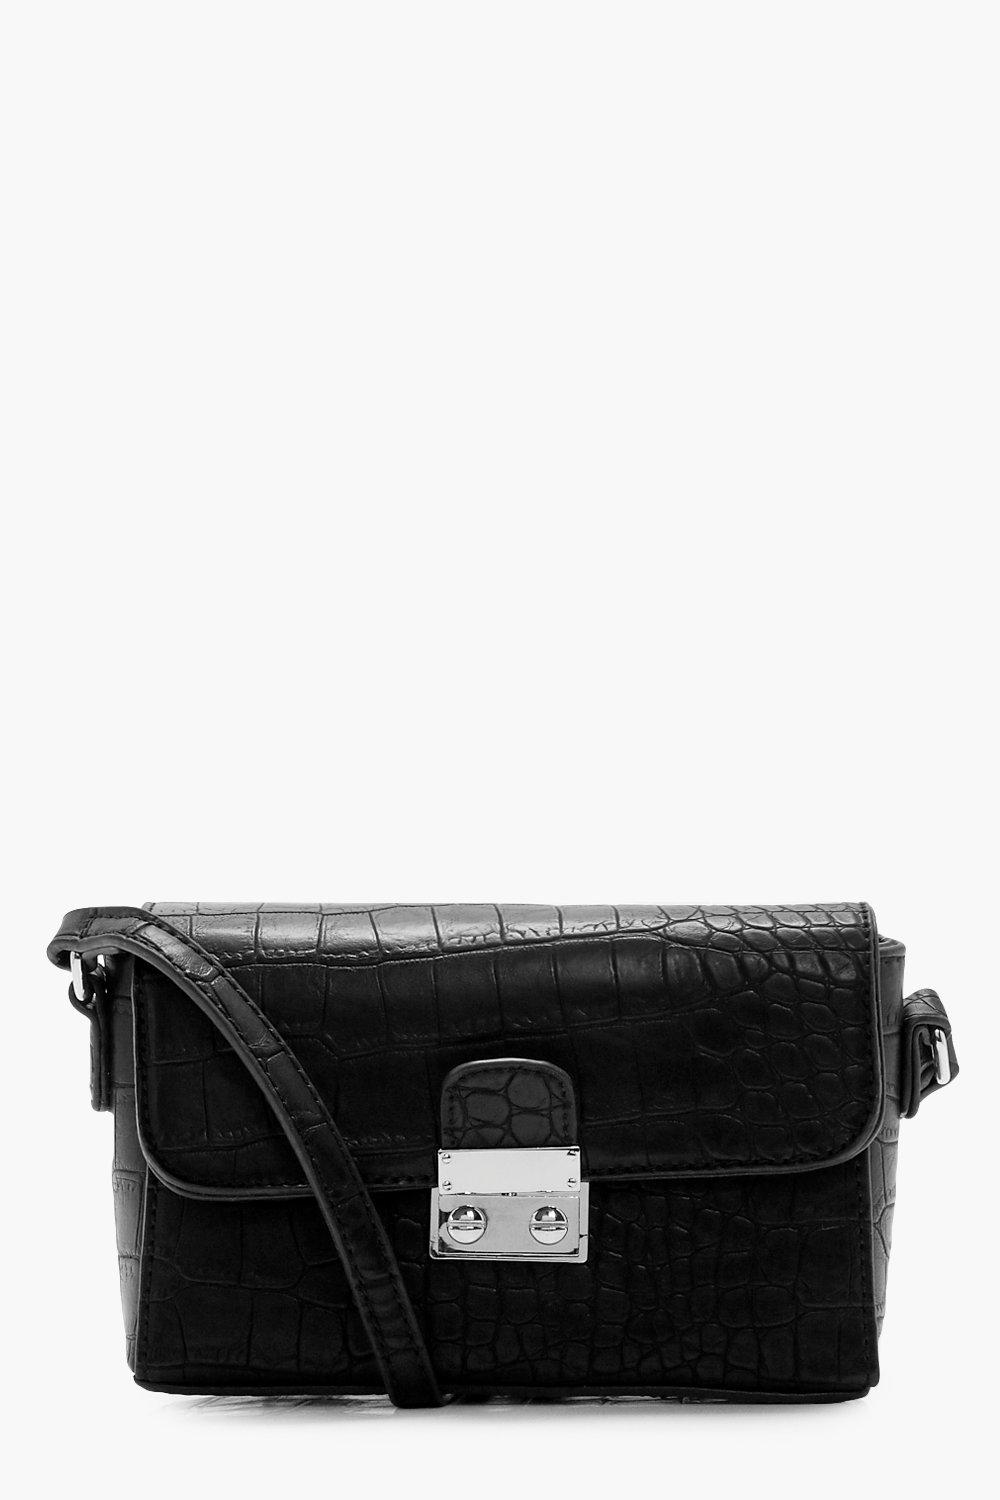 Croc & Lock Cross Body - black - Chantelle Croc &